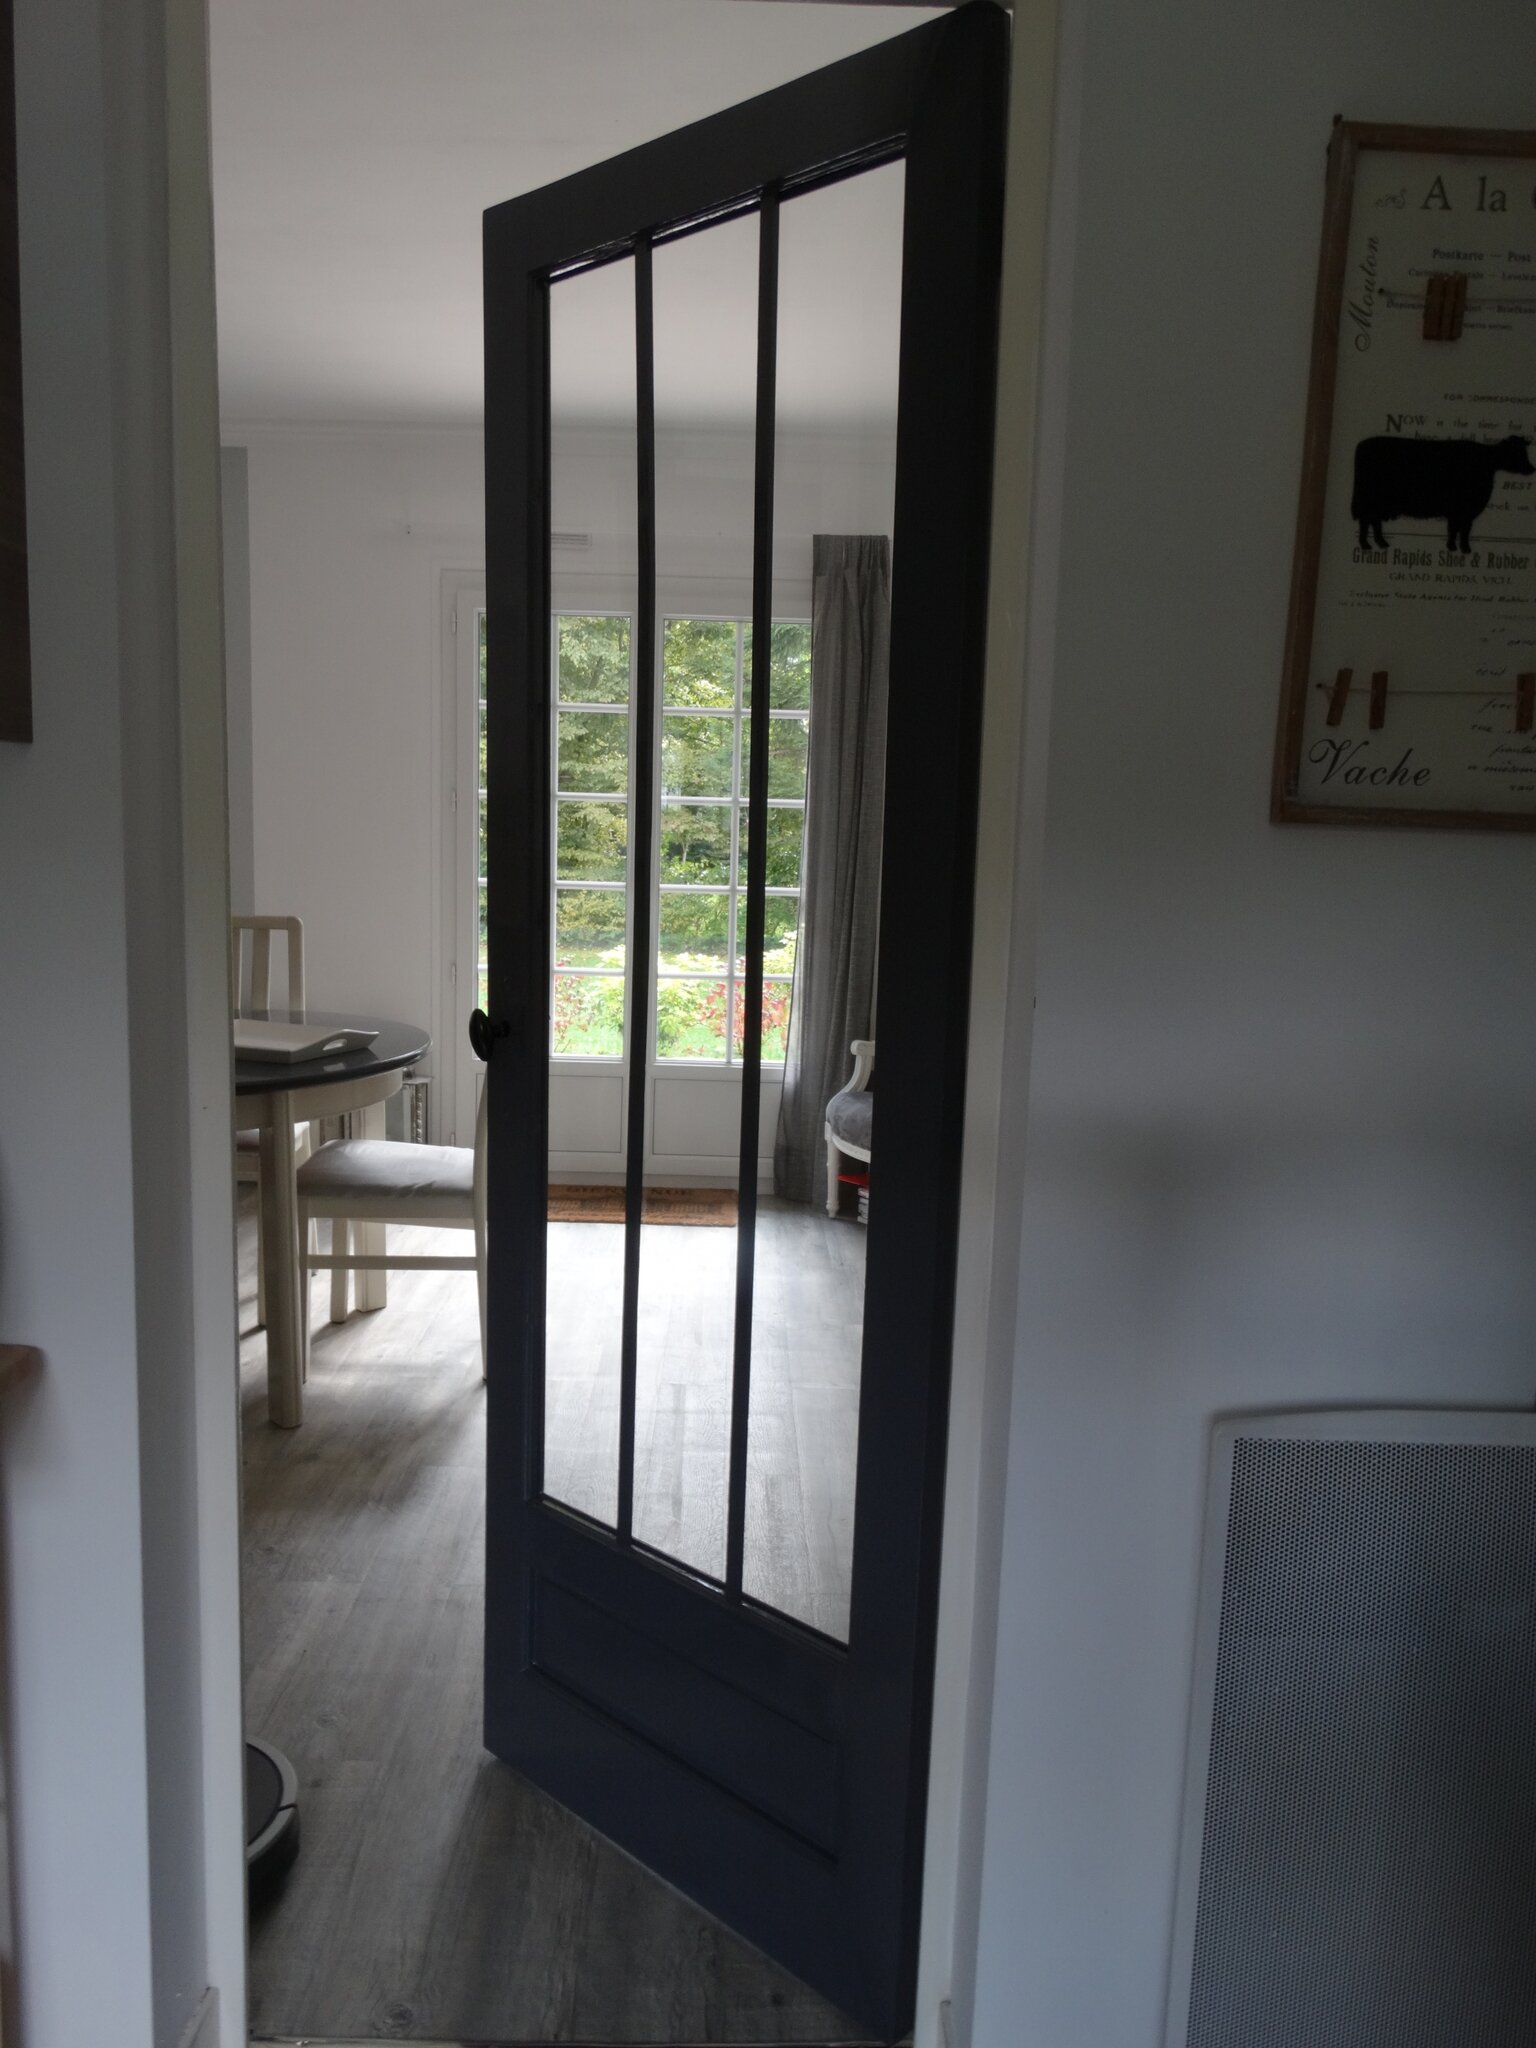 Porte int rieure fa on atelier nathou kikou mais pas for Porte interieur atelier